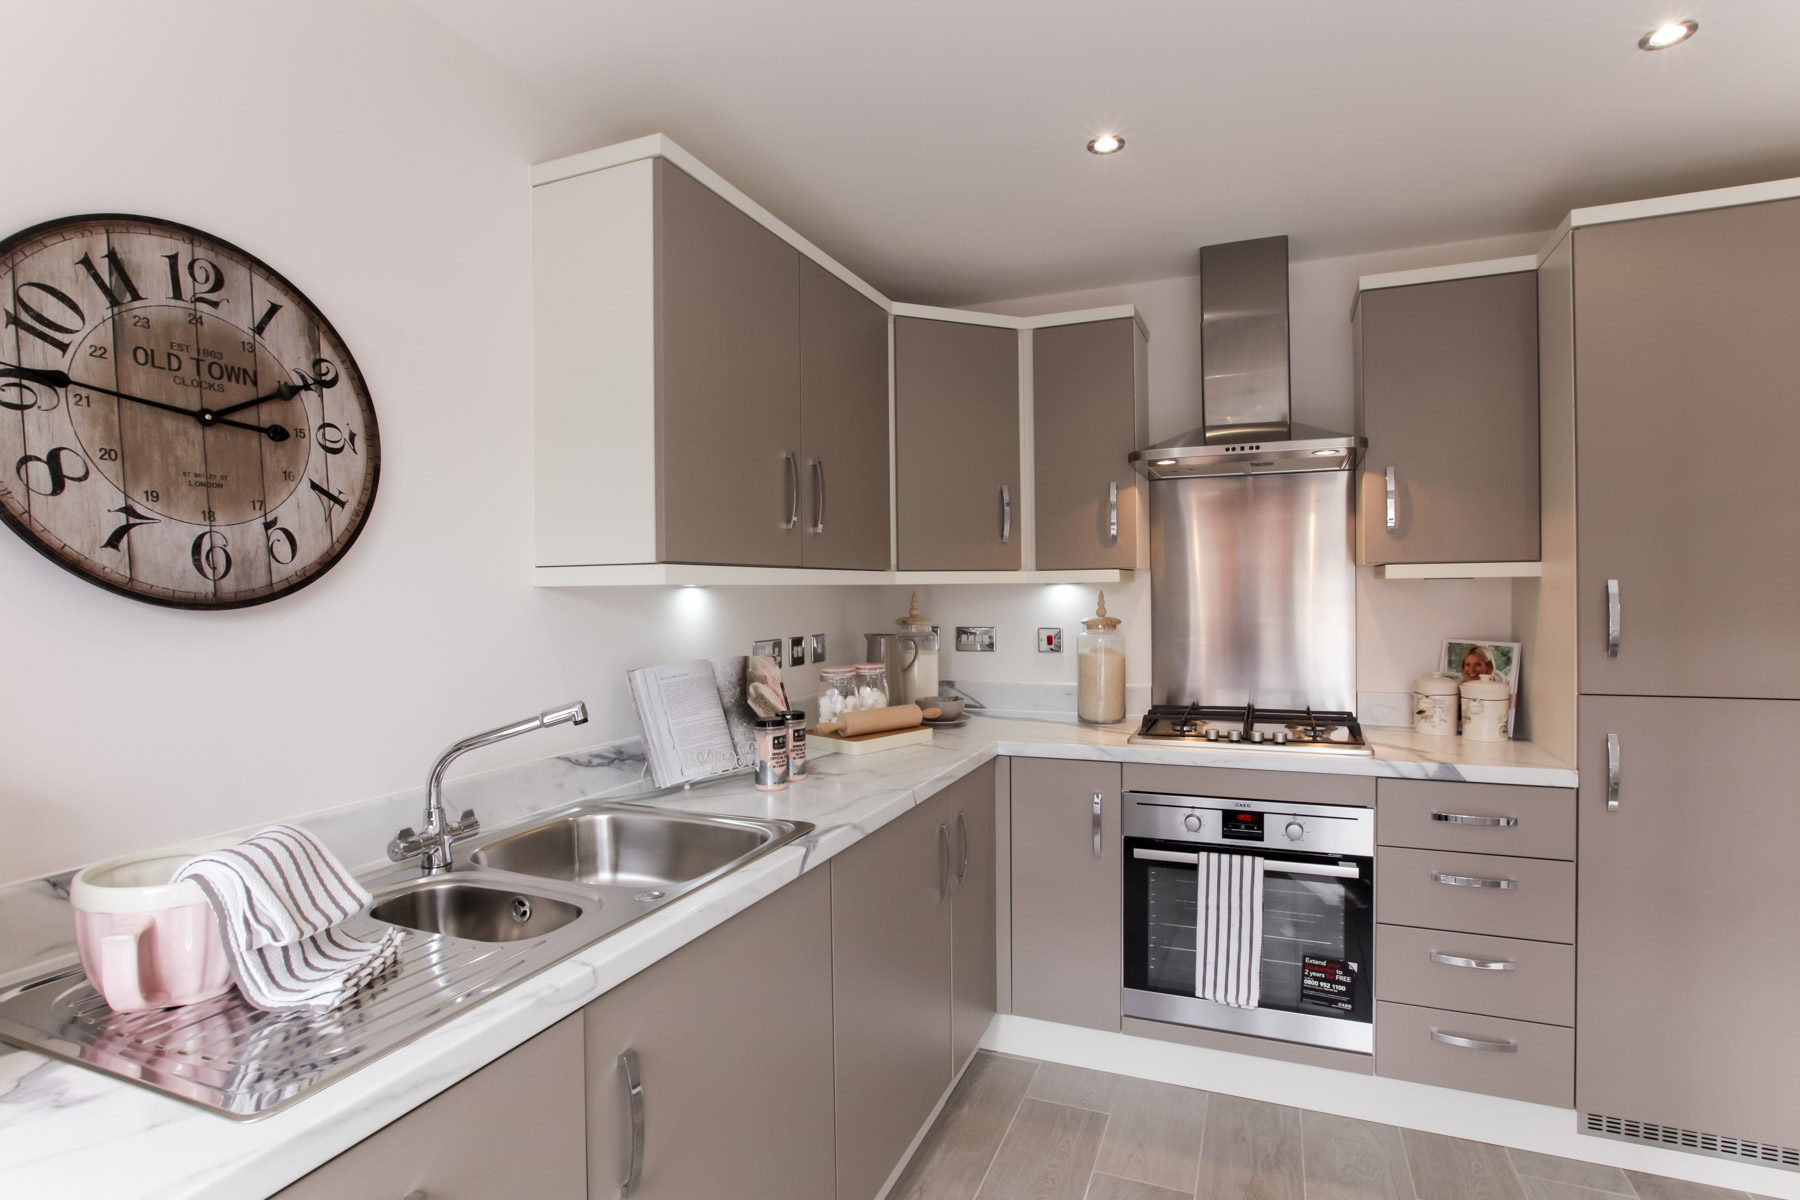 TW Exeter - Riverside Walk - Benford example kitchen